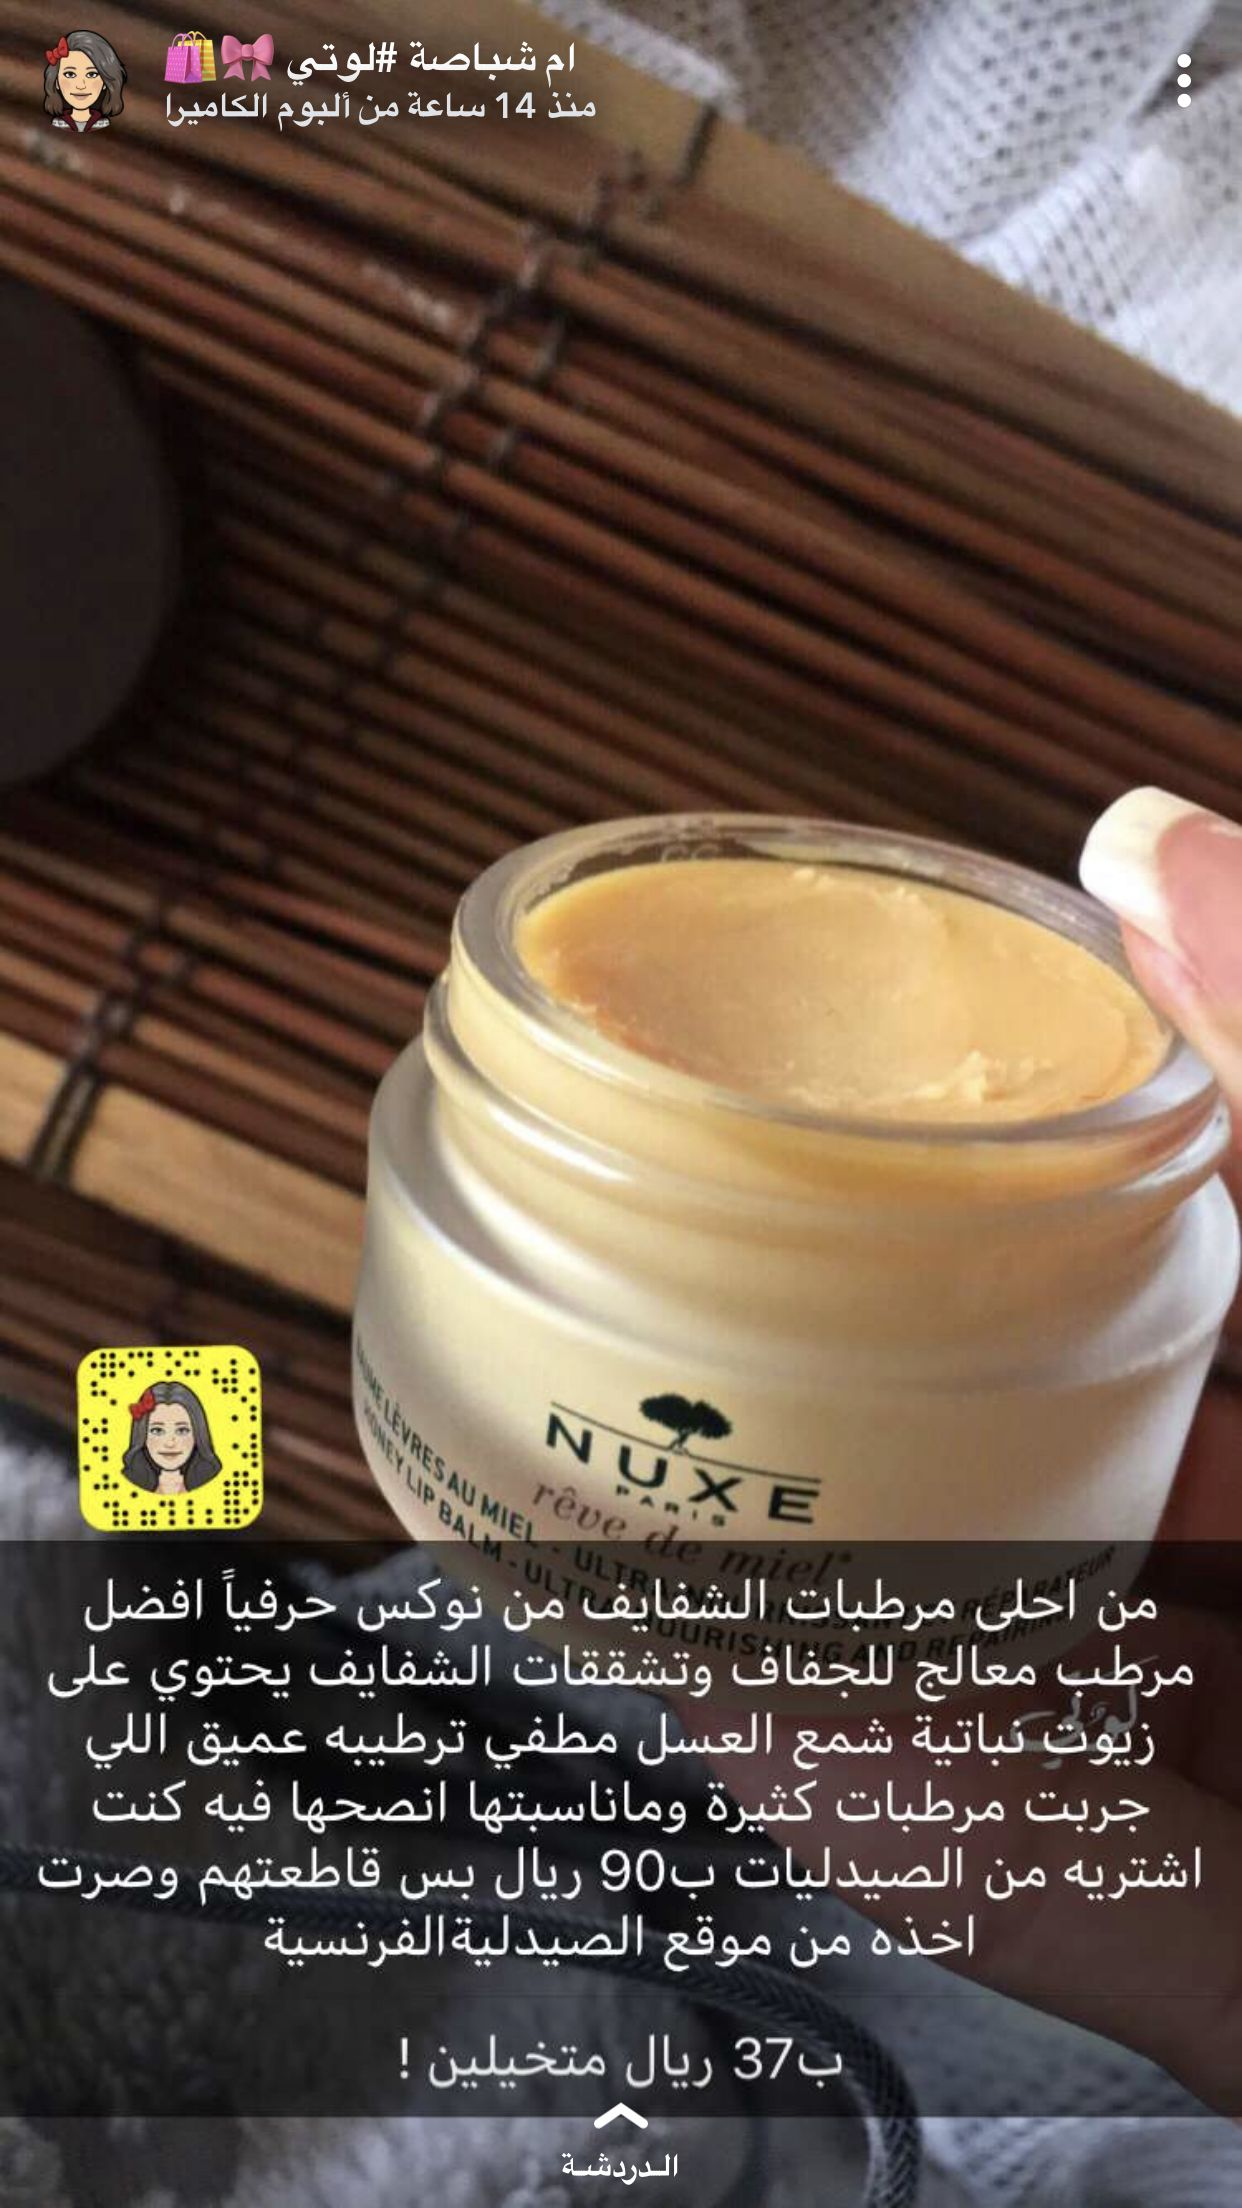 Pin By Yosha On ارواج ومحددات Beauty Skin Care Routine Makeup To Buy Lip Care